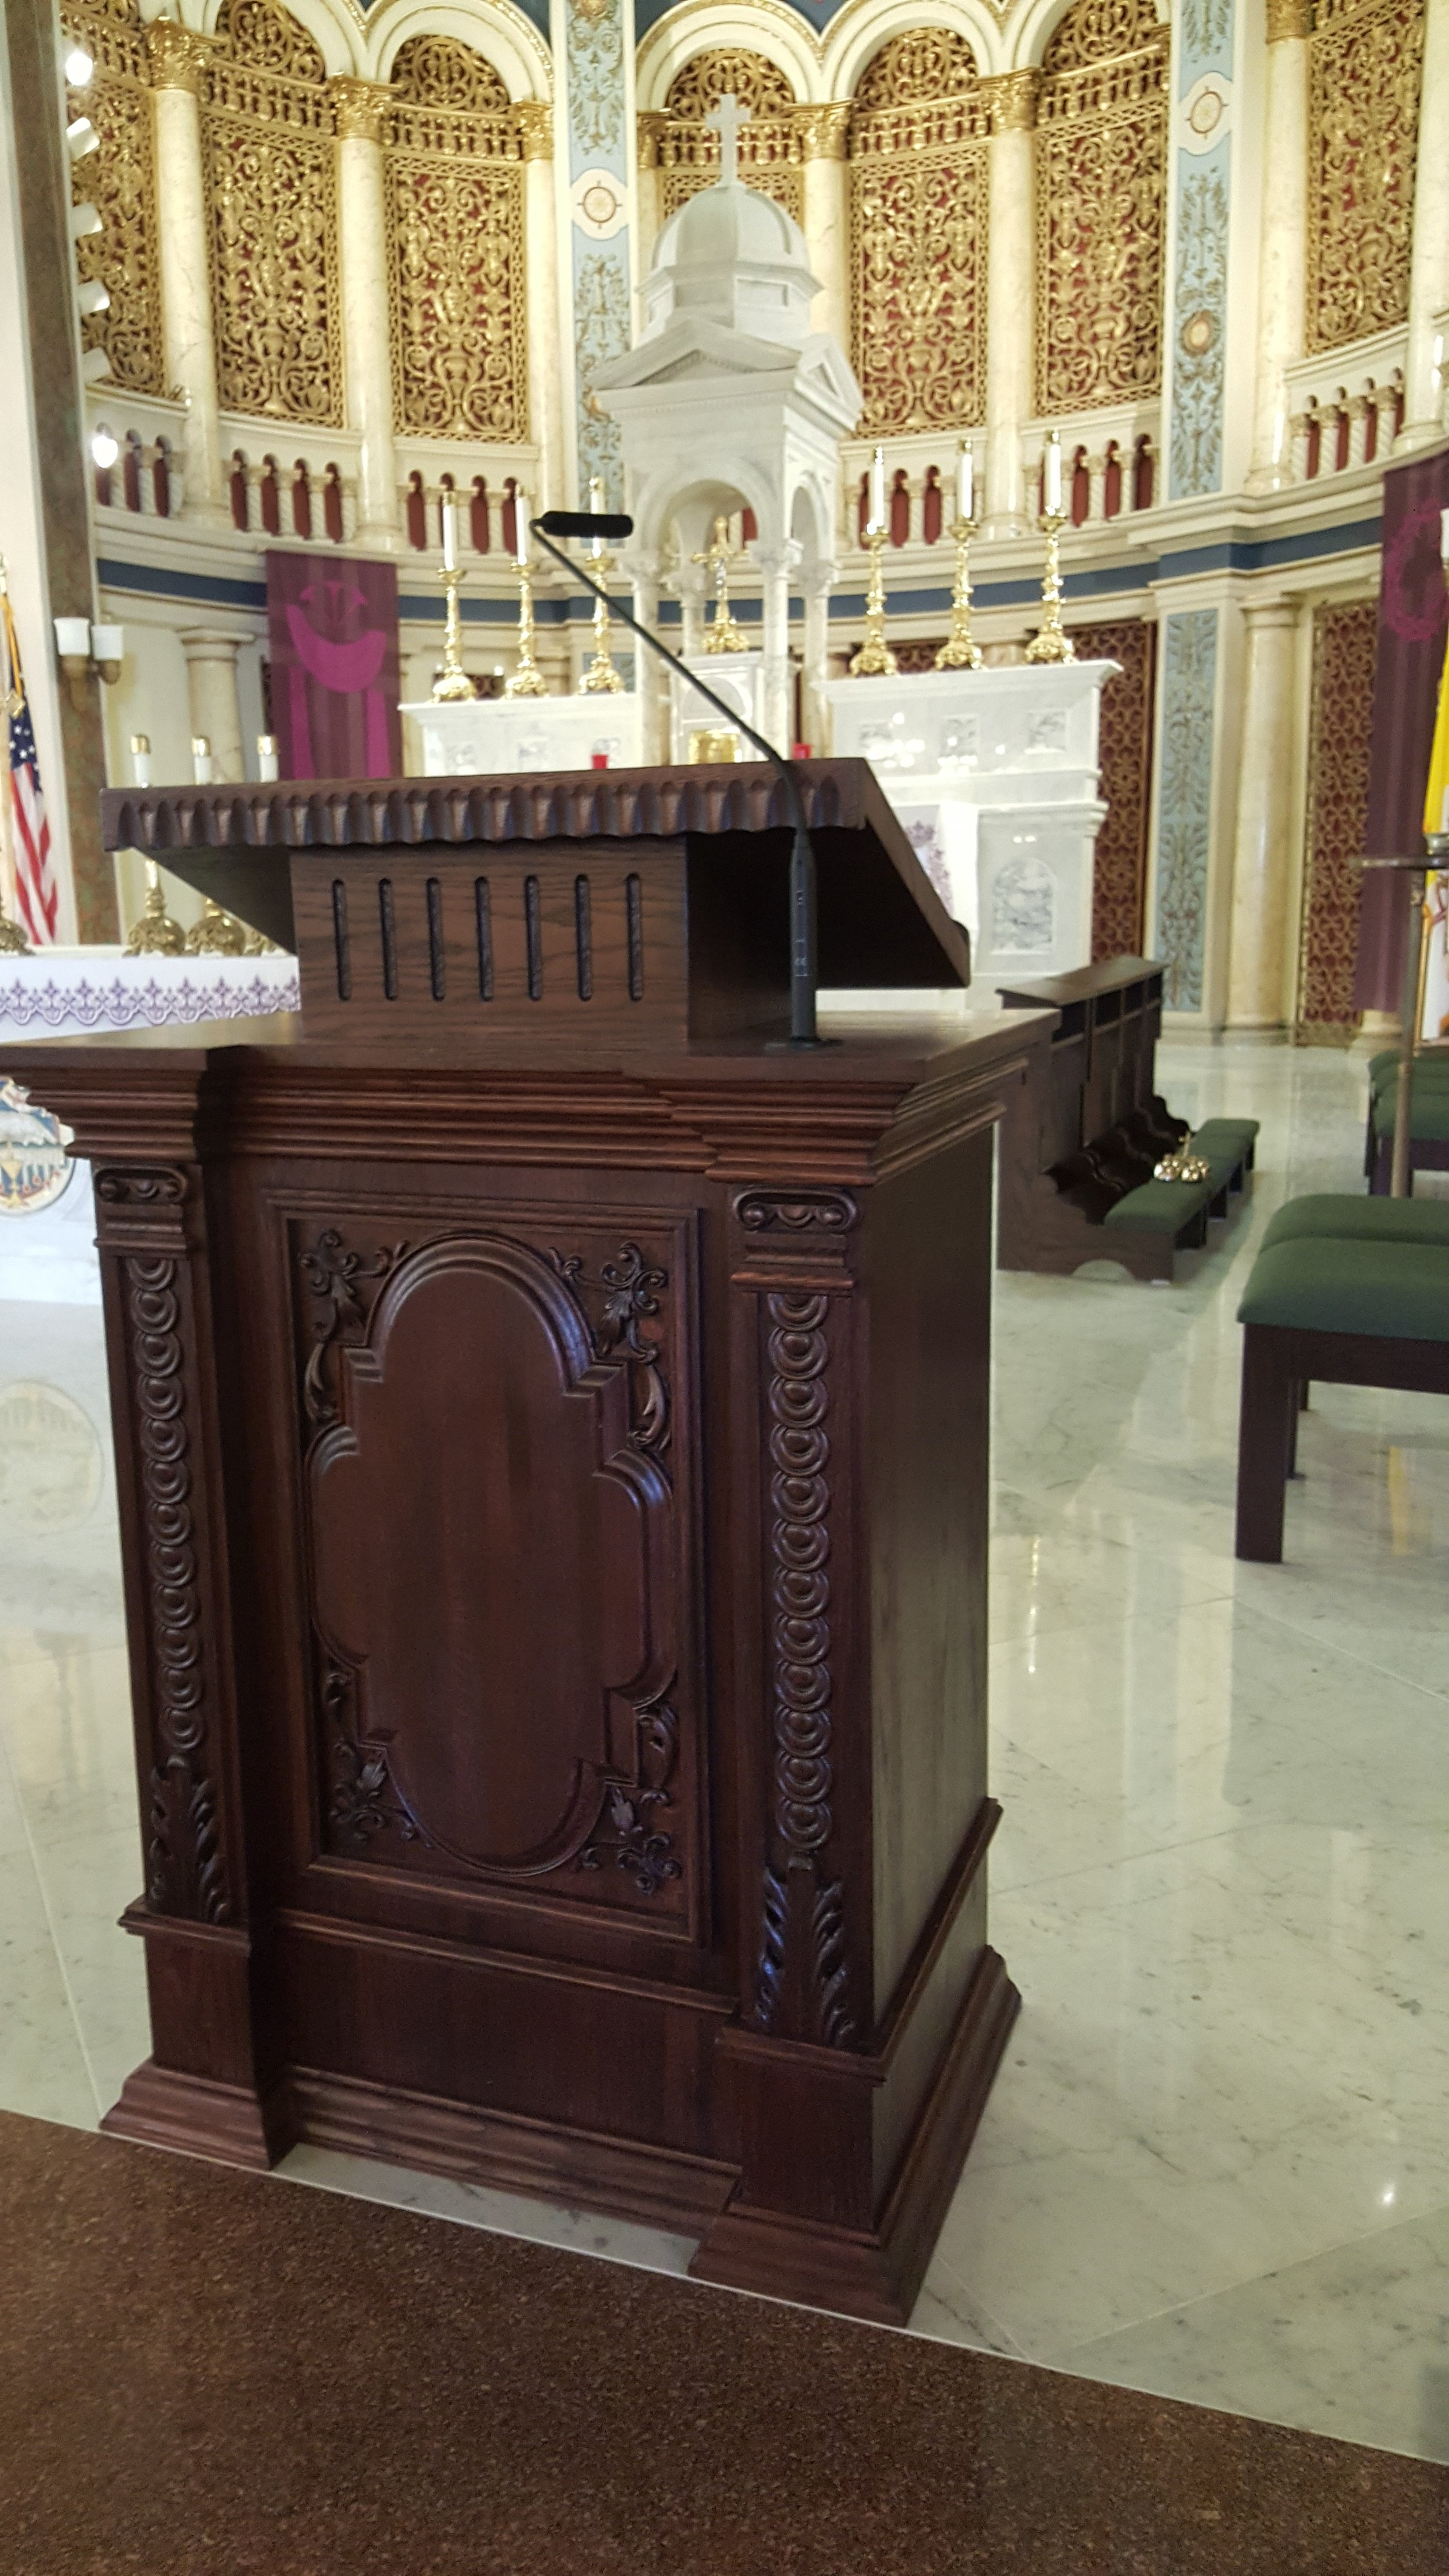 An Audio-Technica ES915ML mounted on a pulpit